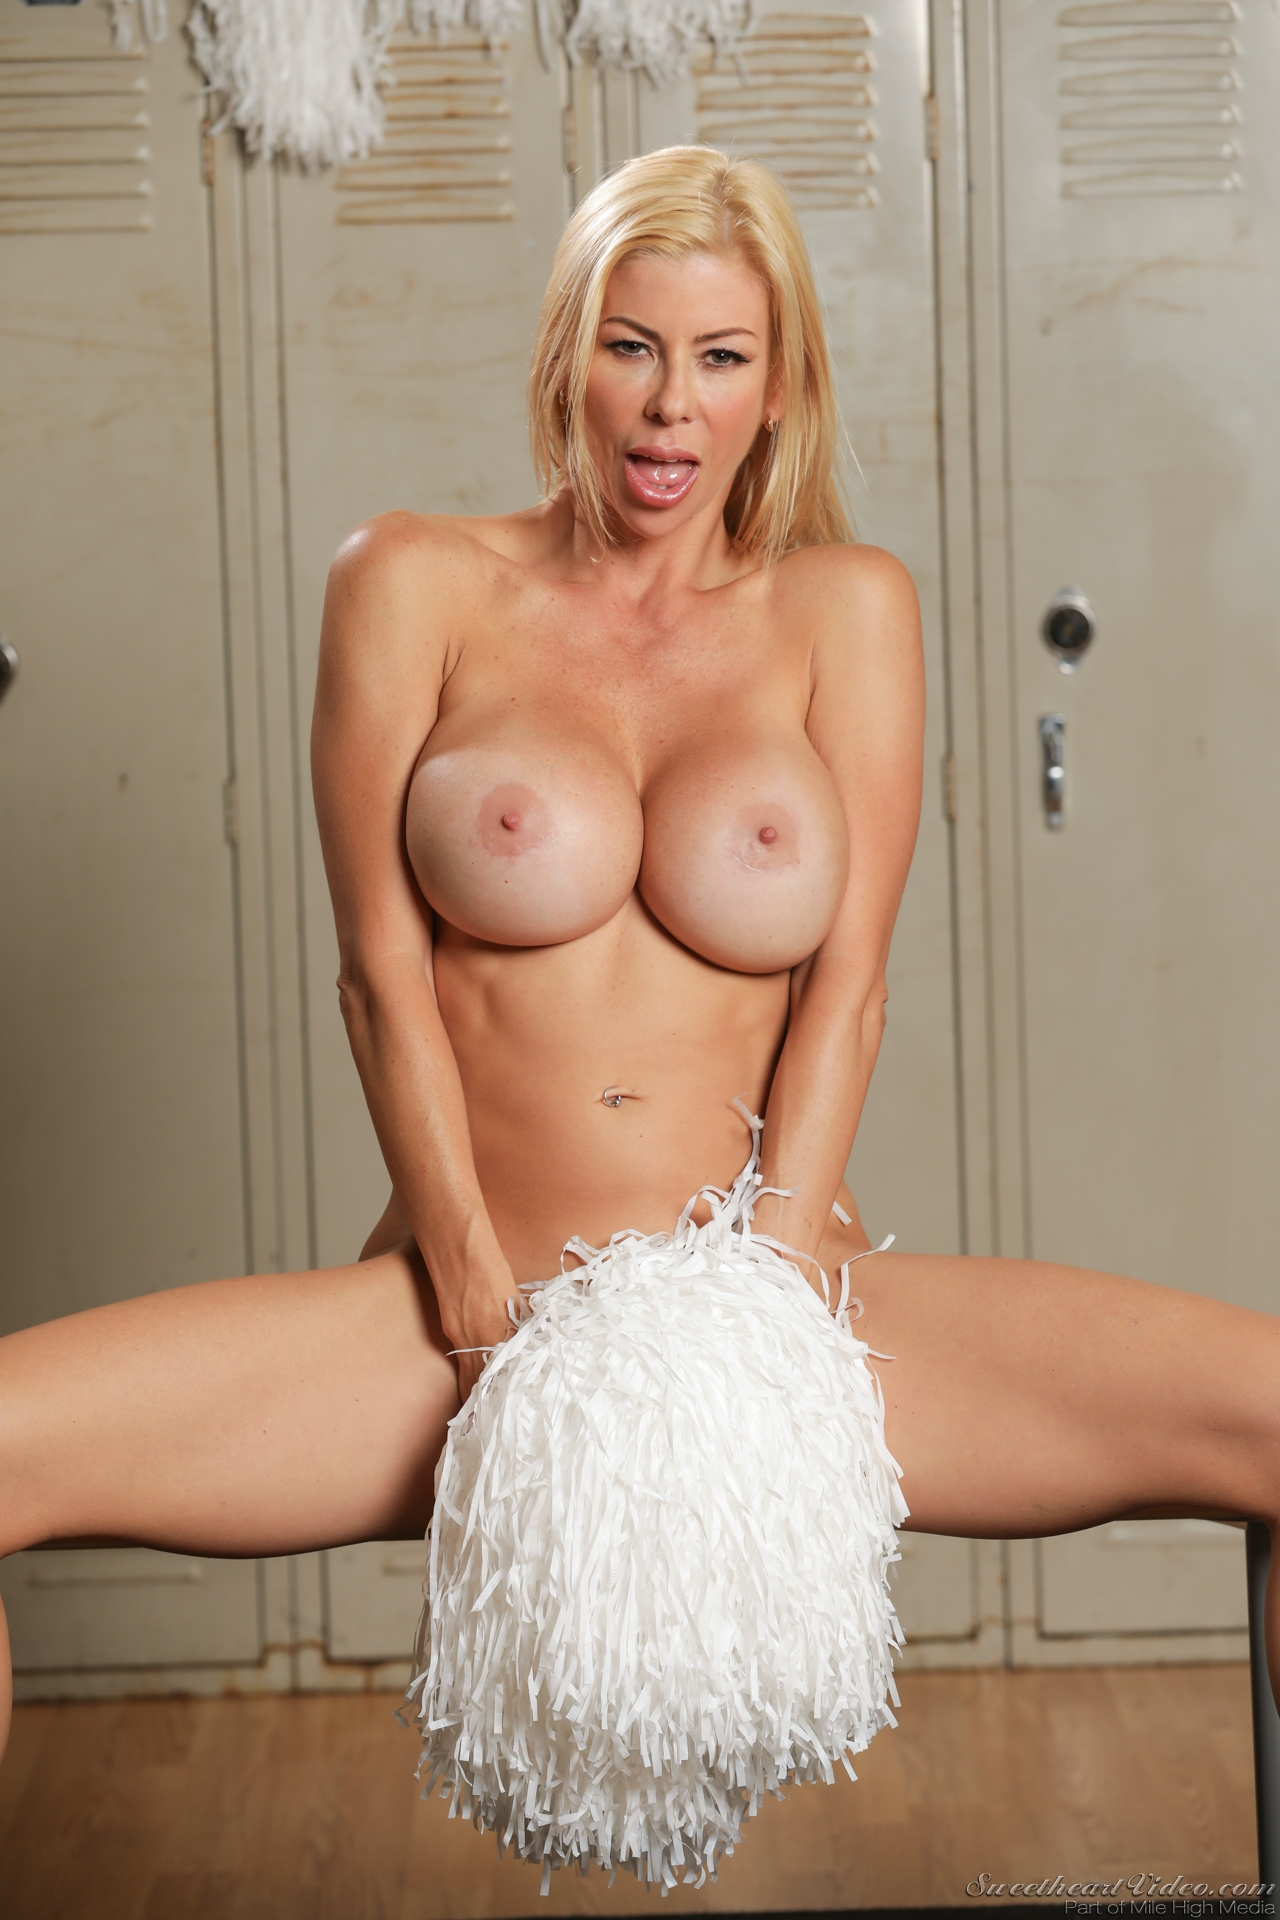 Alexis fawx will cheer you up 10